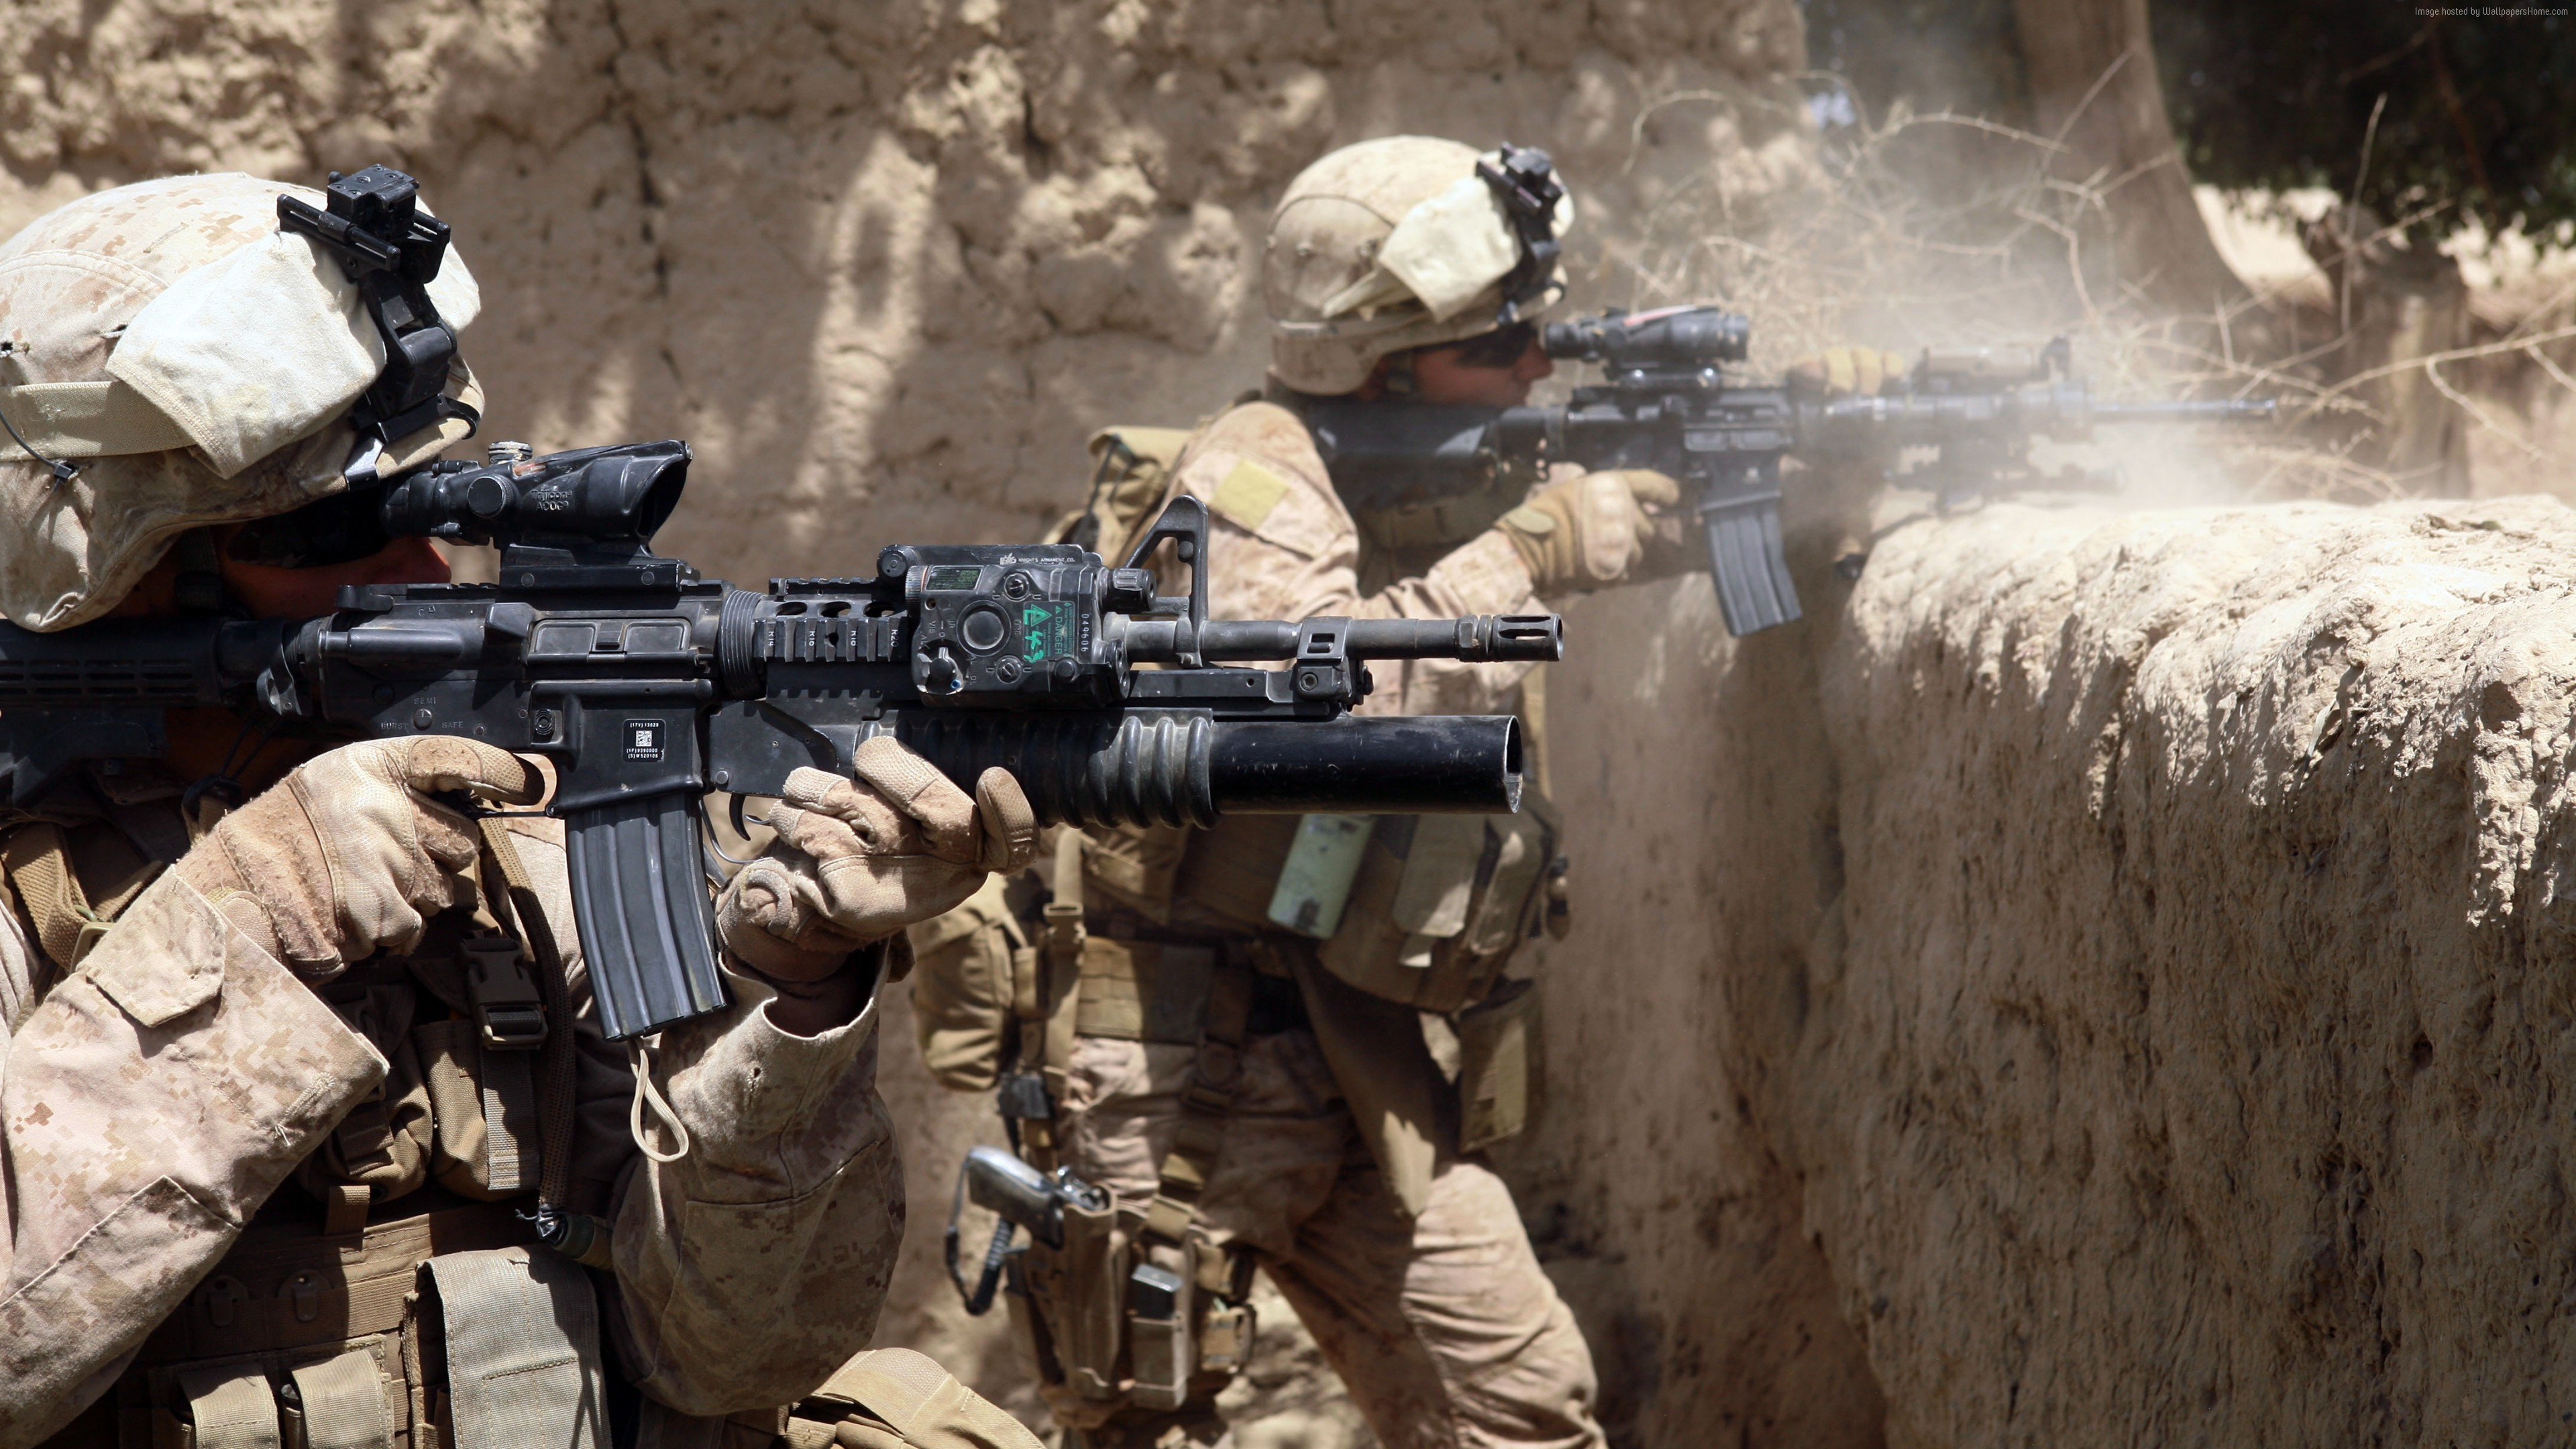 Wallpaper AR 15 M 16 Red Sight US Army Marine Corps Military Download